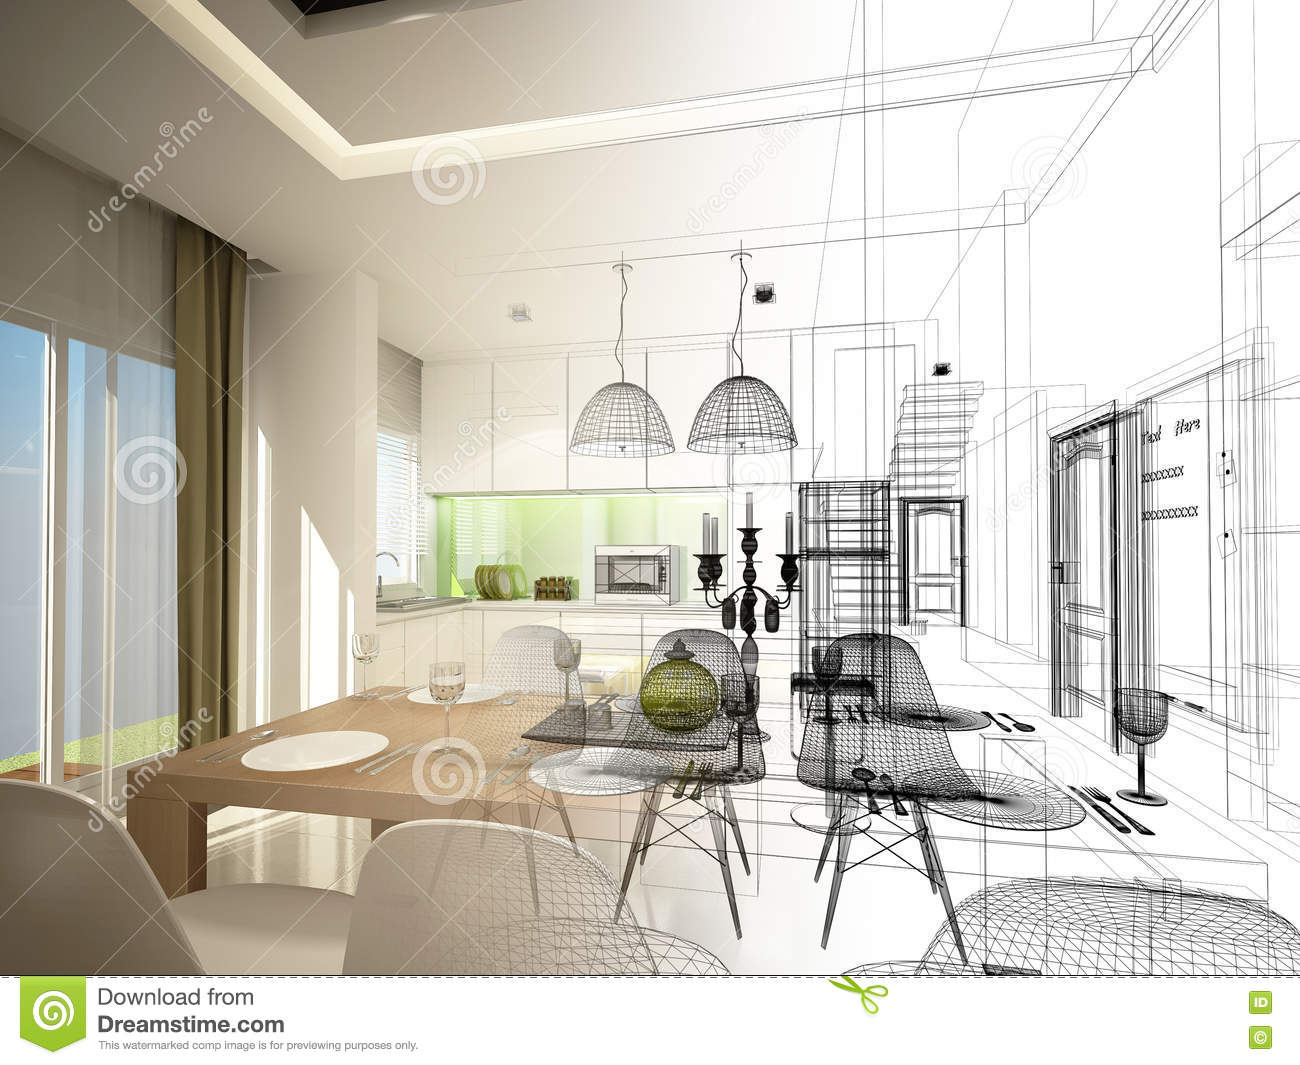 Abstract Sketch Design Of Interior Dining And Kitchen Room 3d Stock